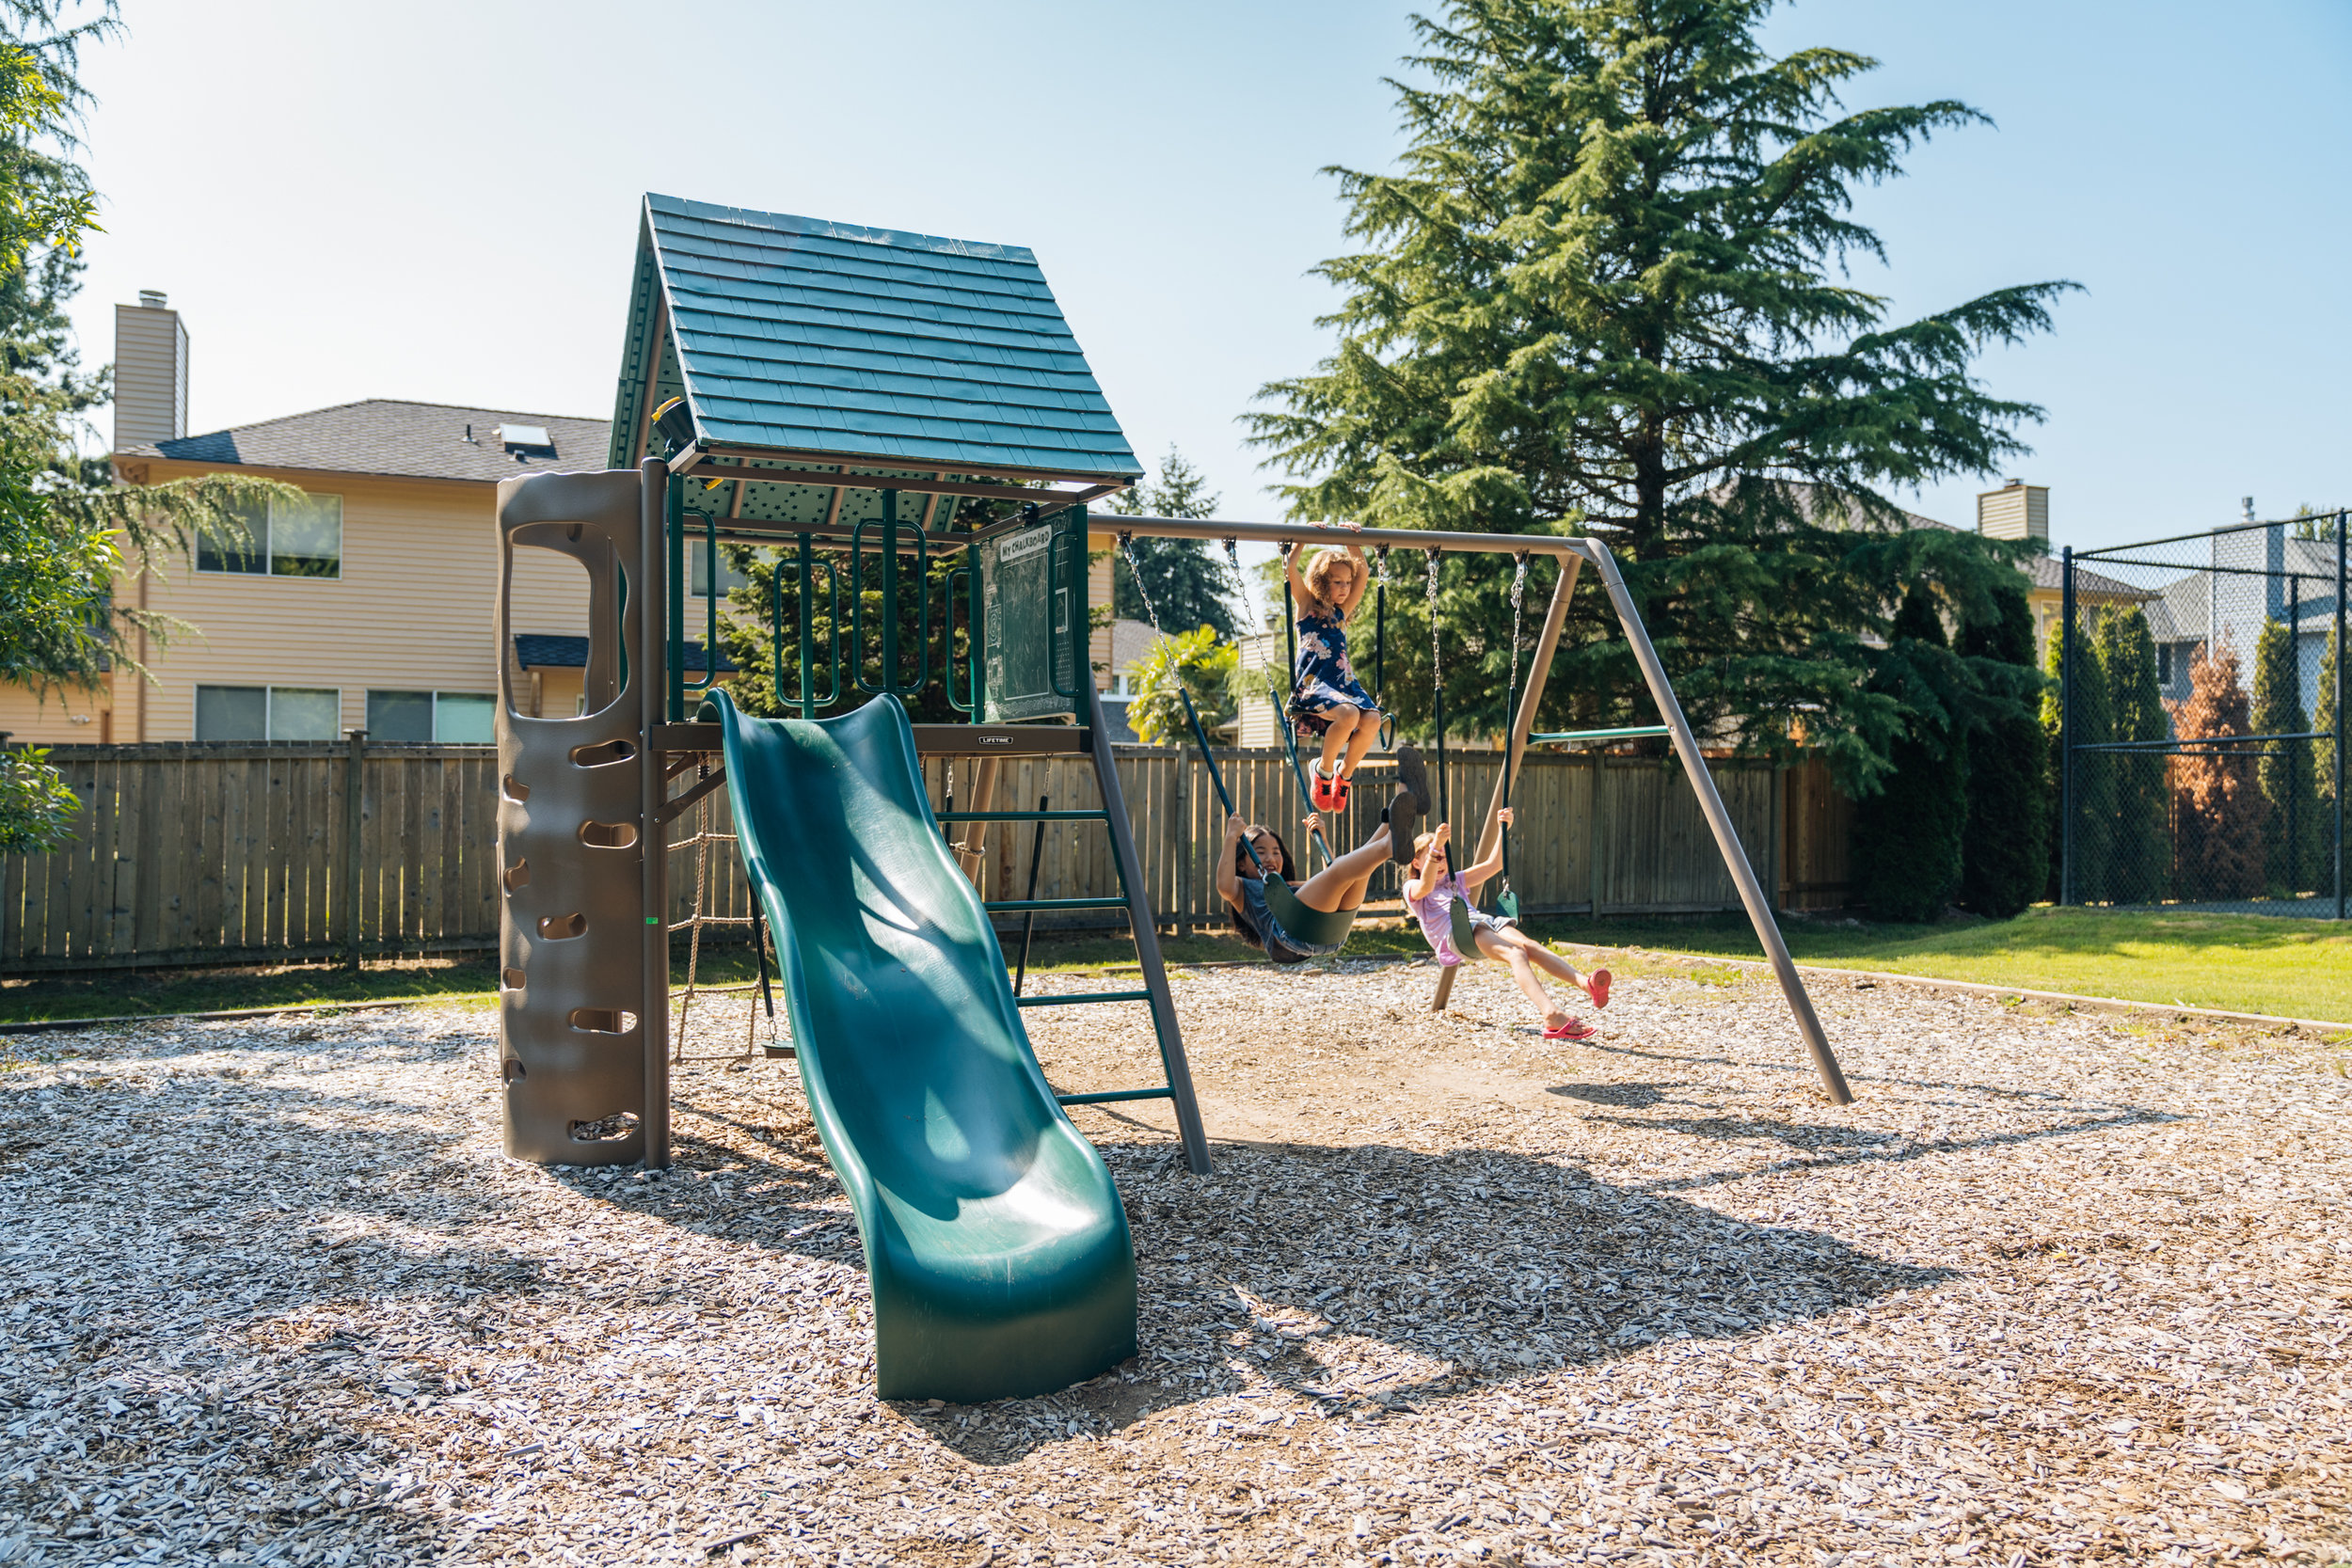 Vibrant COMMUNITY - Summerwind boasts 3 private parks where adults and kids alike meet up to climb on the play structures, enjoy shaded picnic tables or shoot some hoops. There are also paved sidewalks throughout the neighborhood.